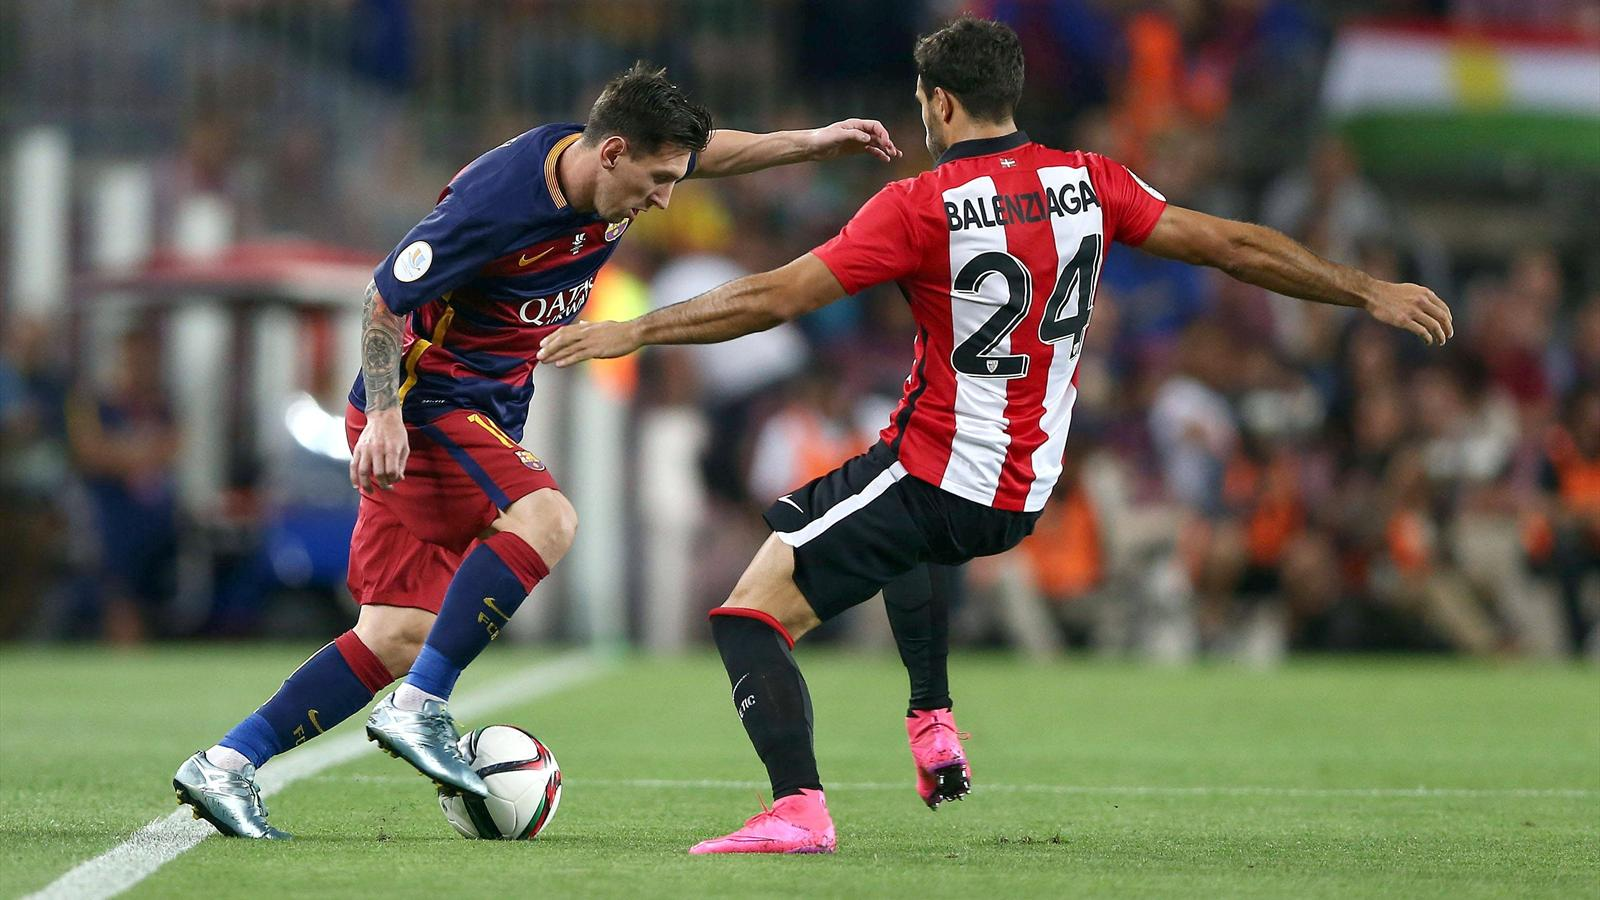 Spanish La Liga match Barcelona vs Ath Bilbao 18 Mar 2018 Preview and stats followed by live commentary video highlights and match report